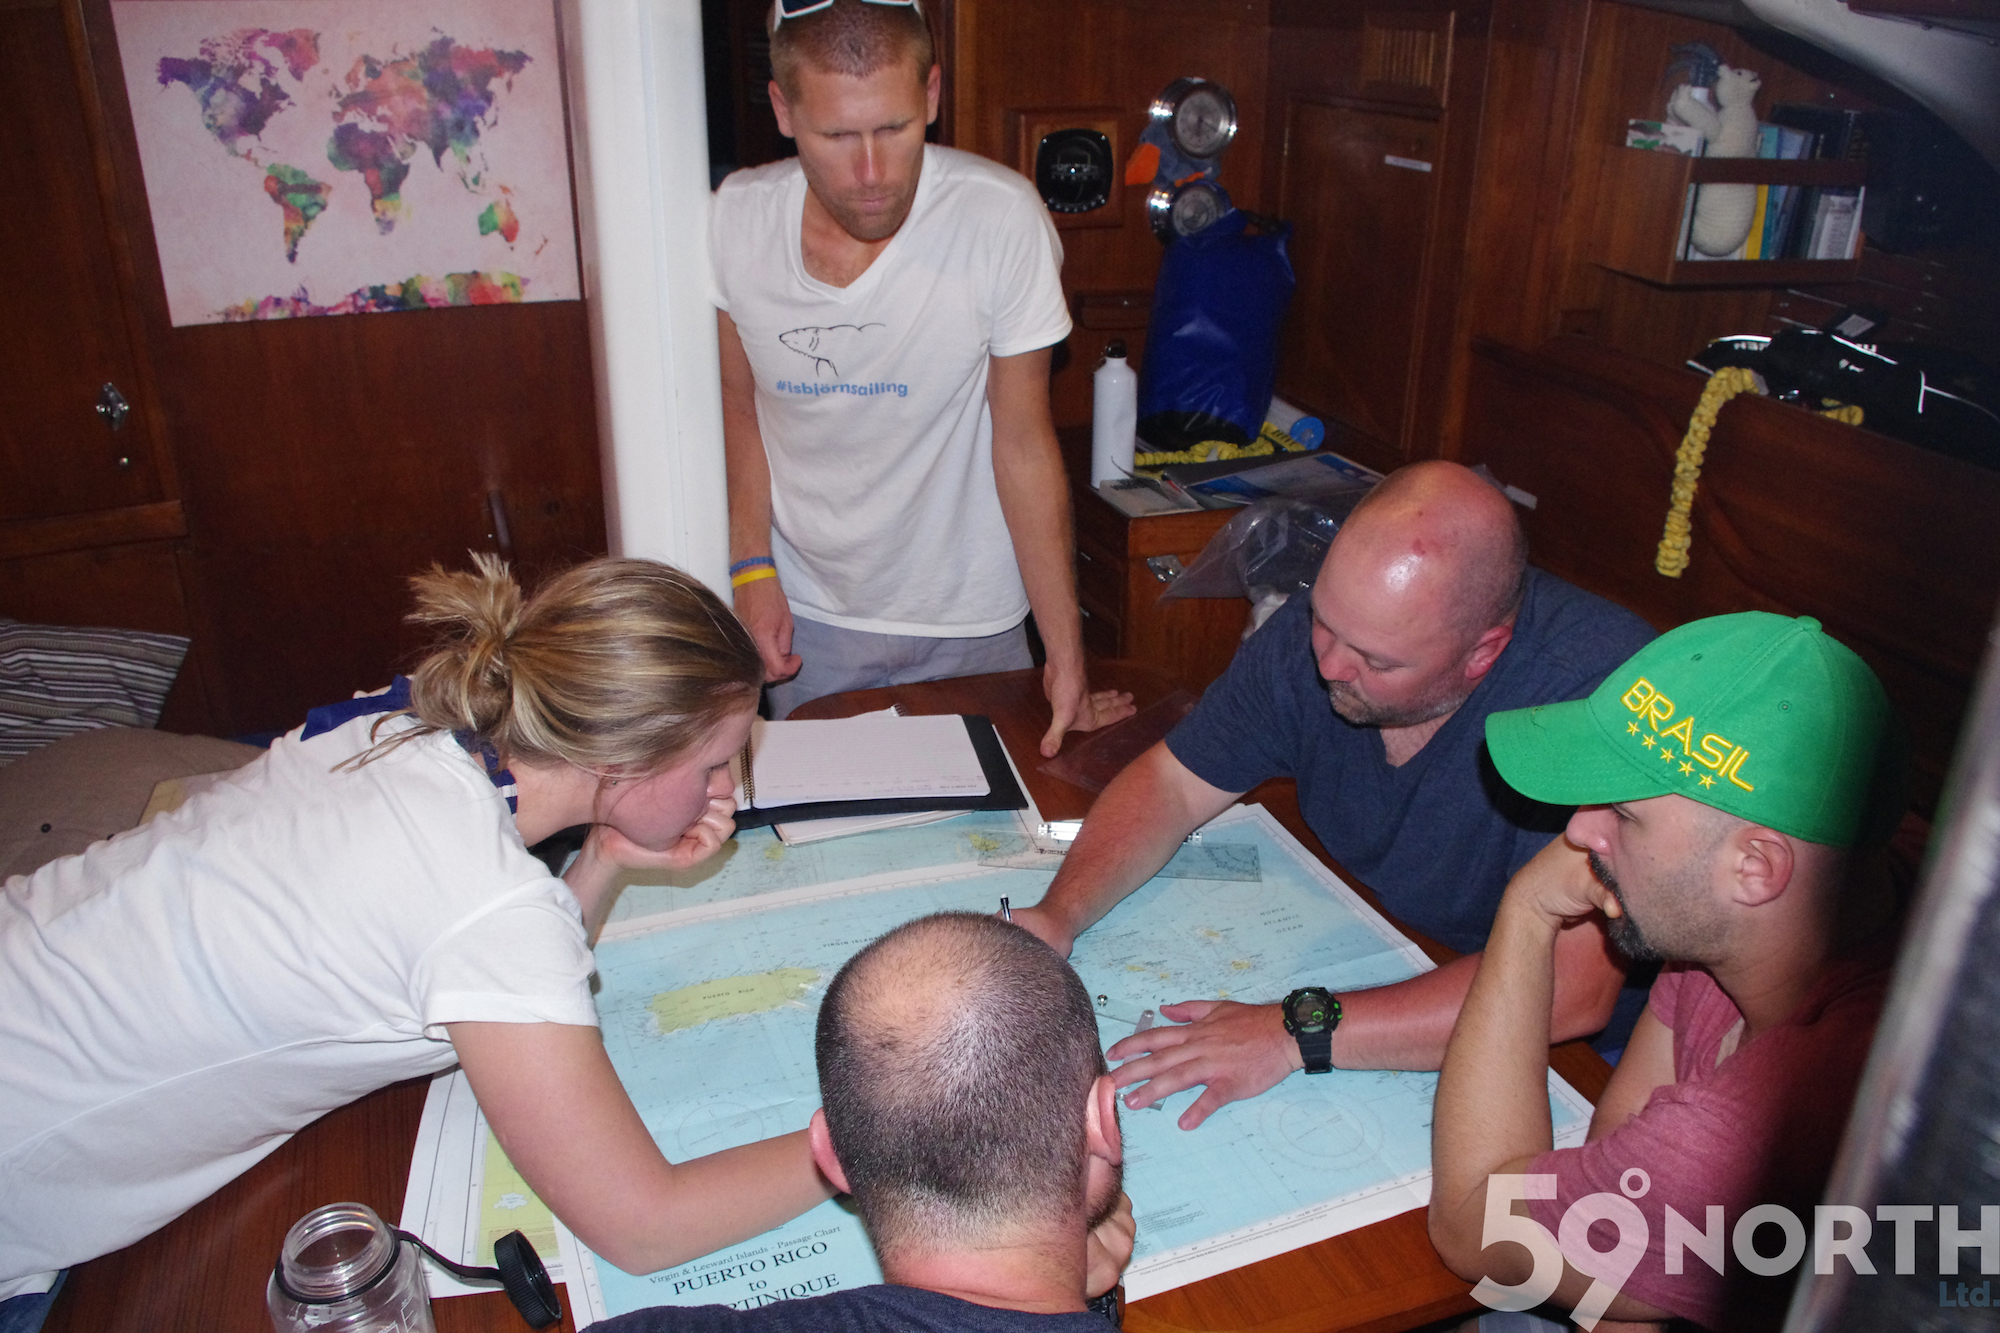 First leg of the year, planning our route before leaving the BVI crew look very focused. :)Jan 2016